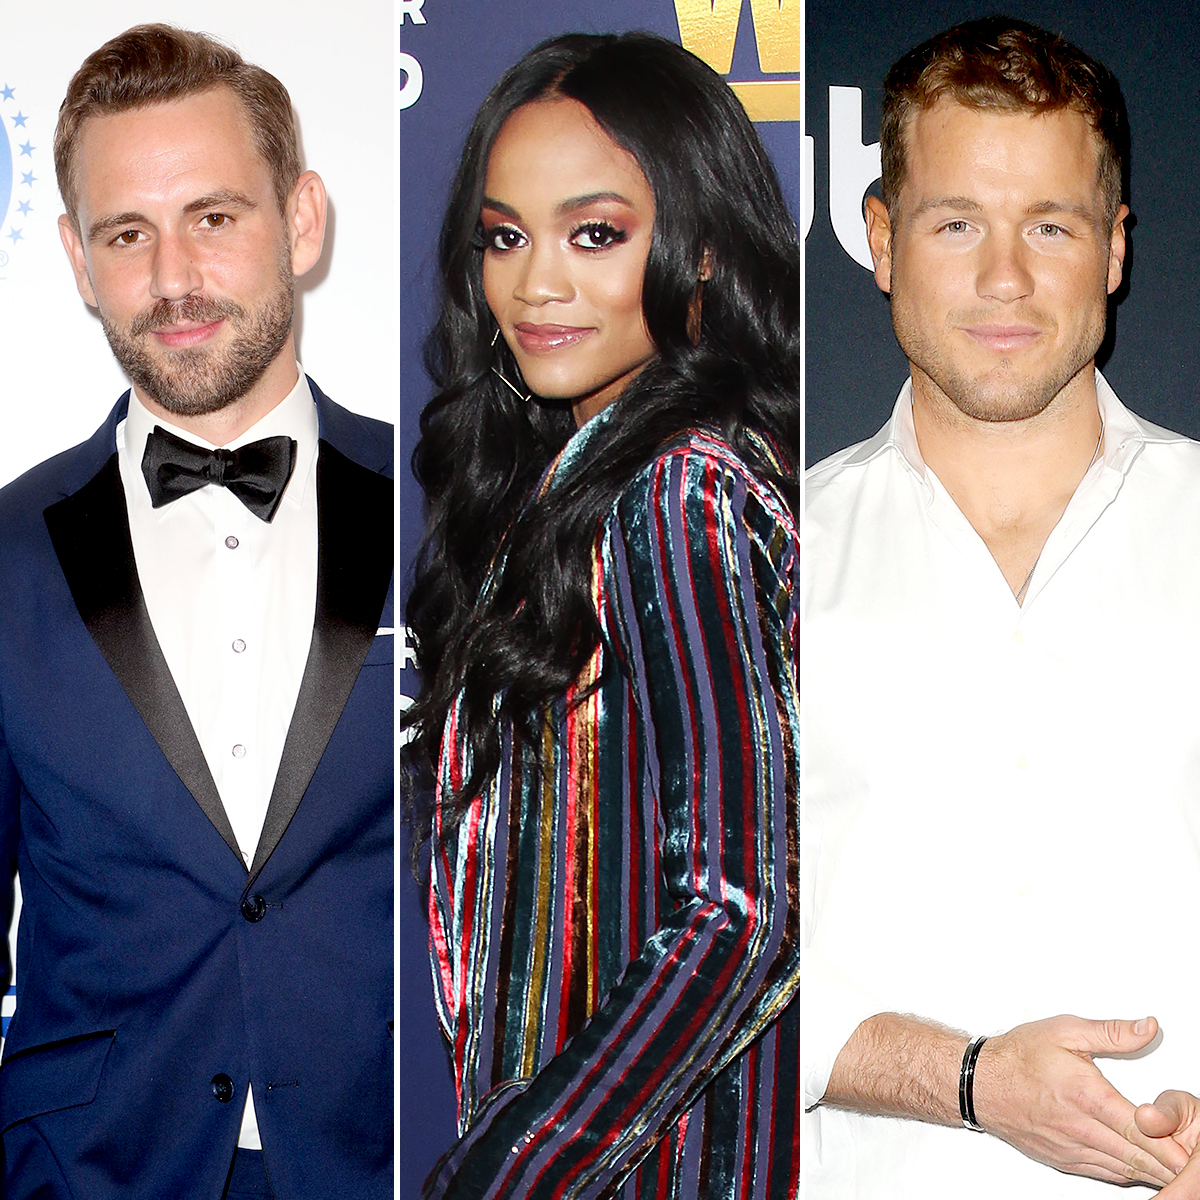 Nick-Viall-Sides-With-Rachel-Lindsay-Over-Colton-Underwood-Dig